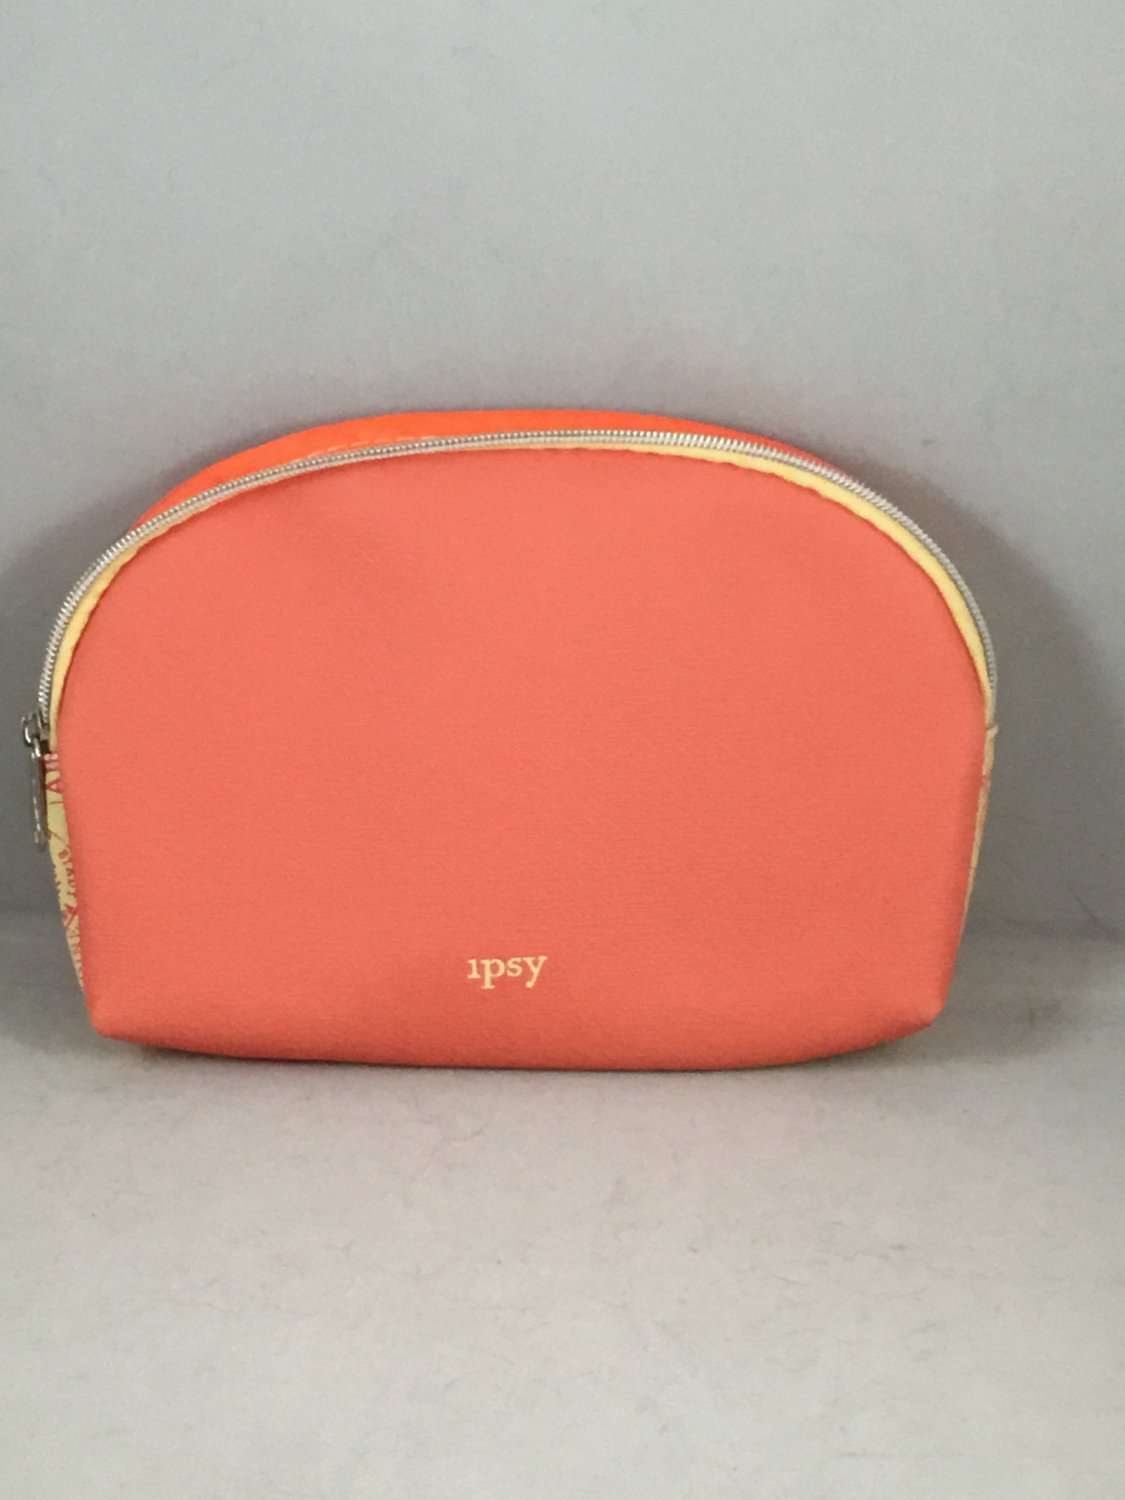 Ipsy MyGlam Glam Bag May 2018 Go There Cosmetic case purse Orange & Yellow Travel